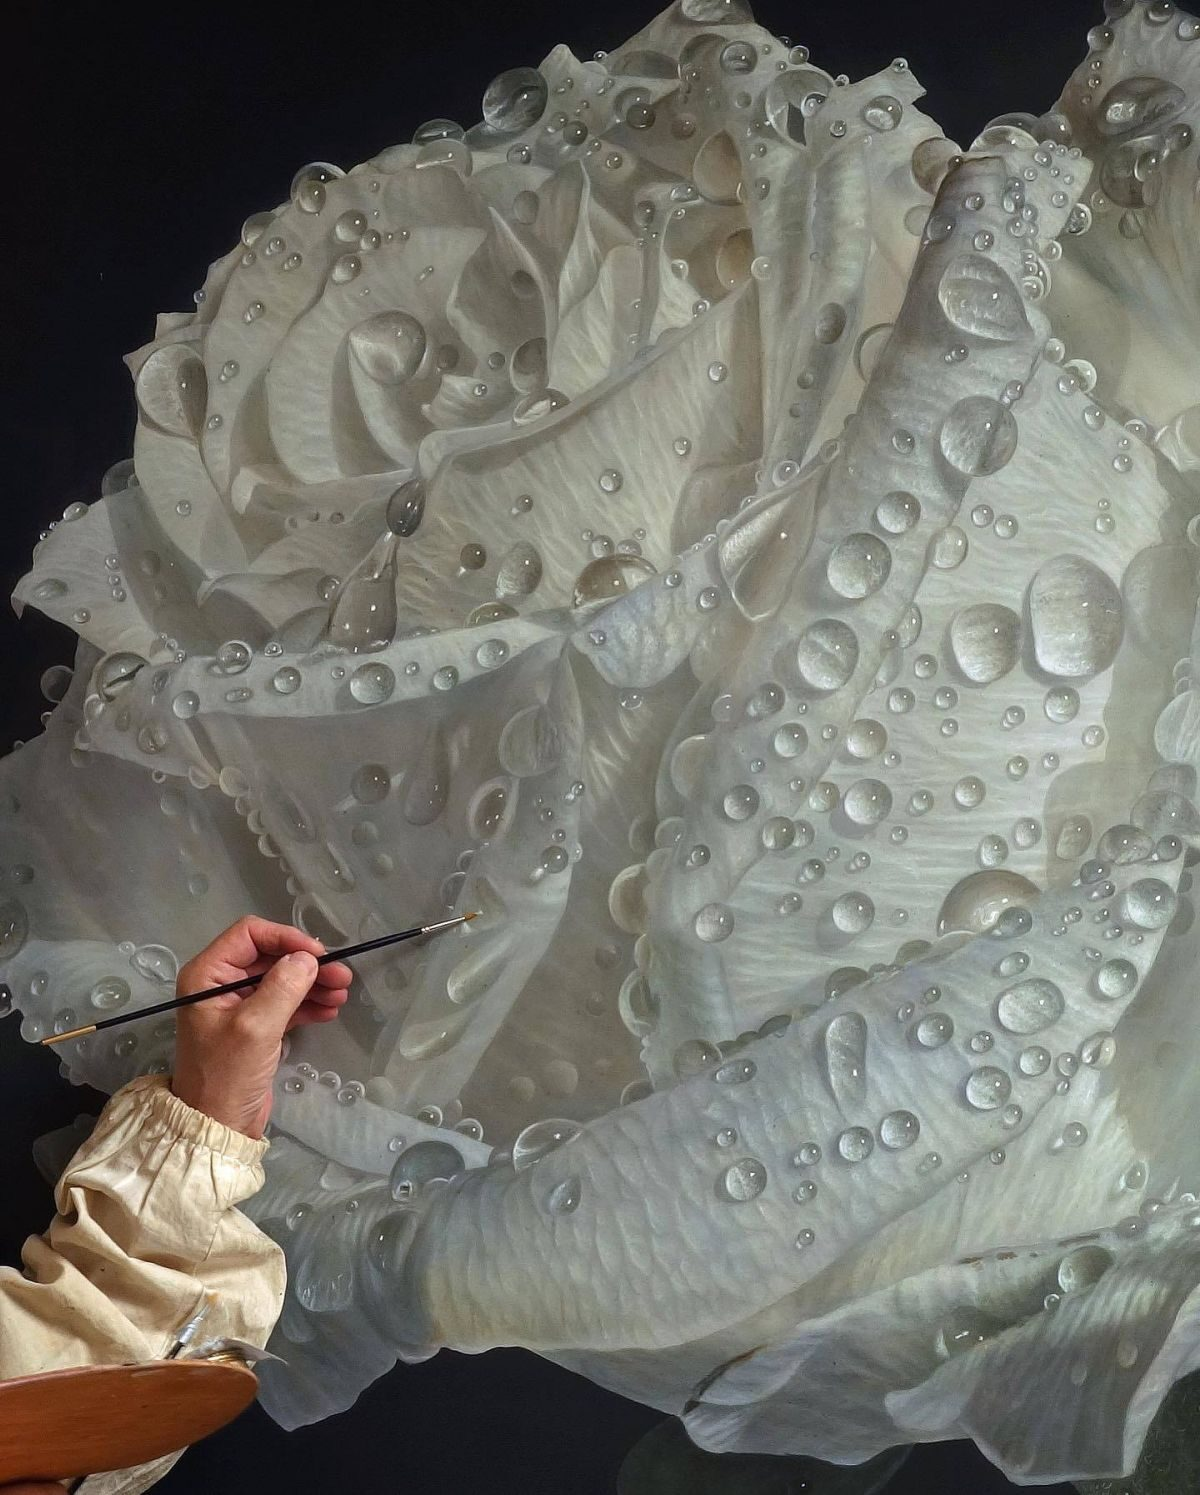 Hyper Realistic Oil Painting White Rose by Gioacchino Passini